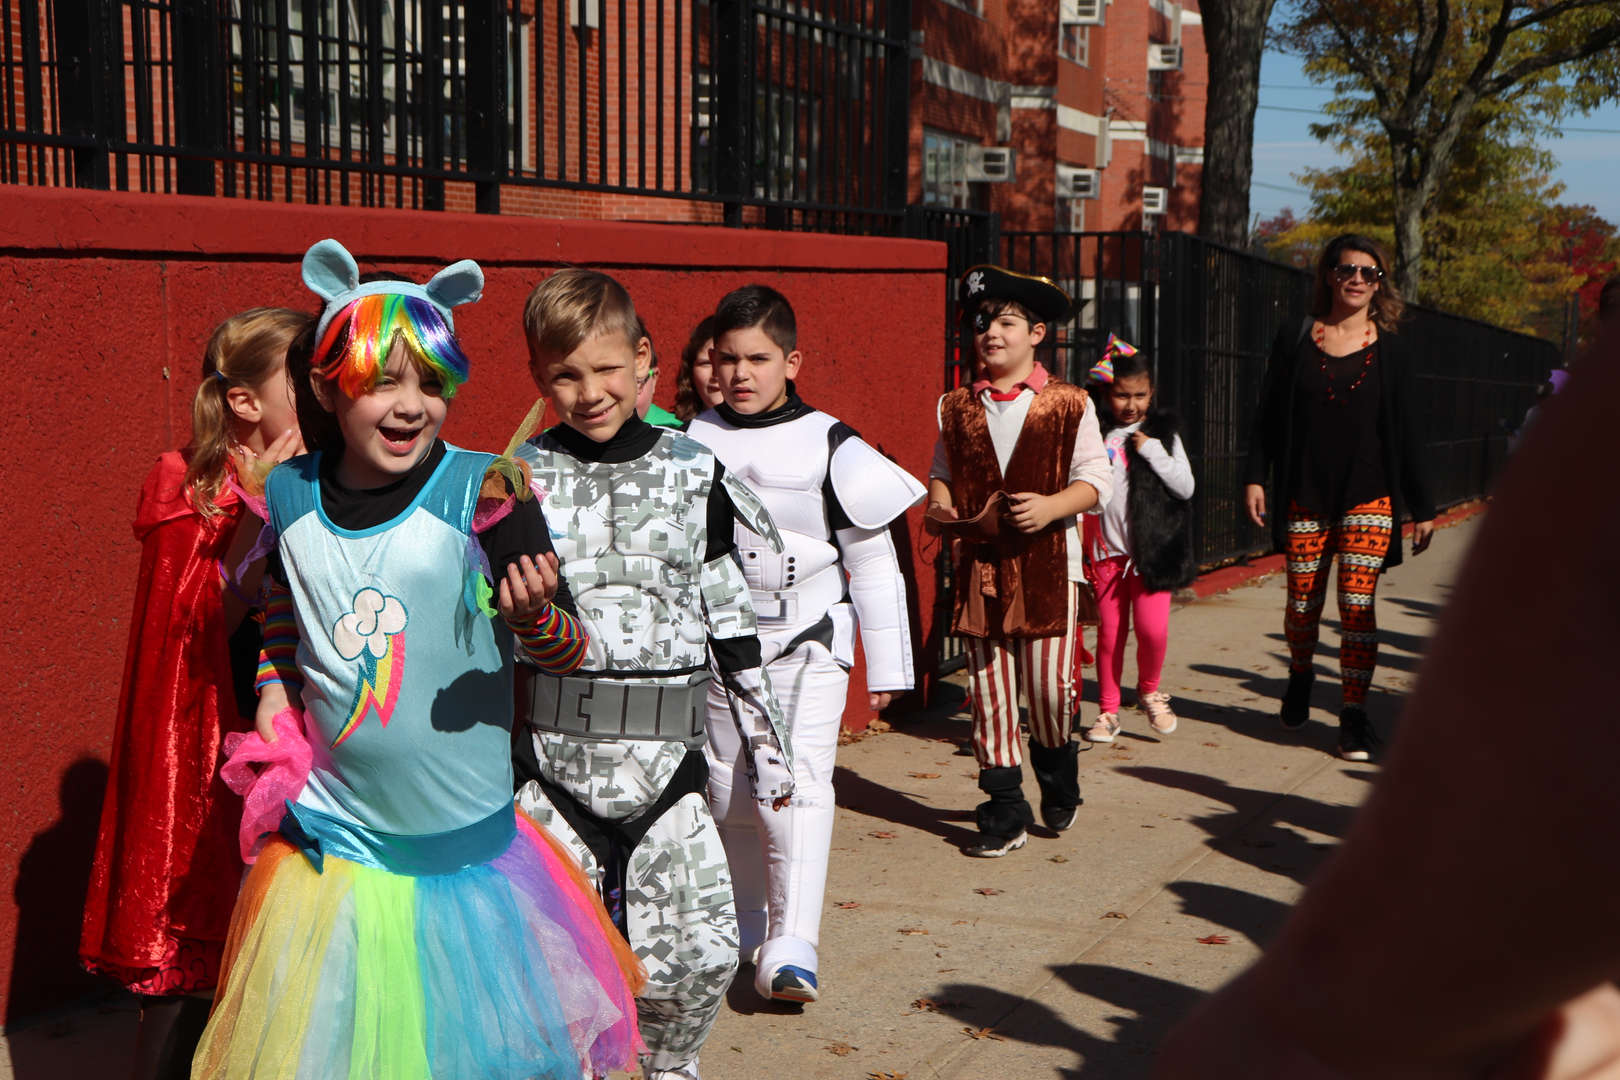 students in costumes walking outside